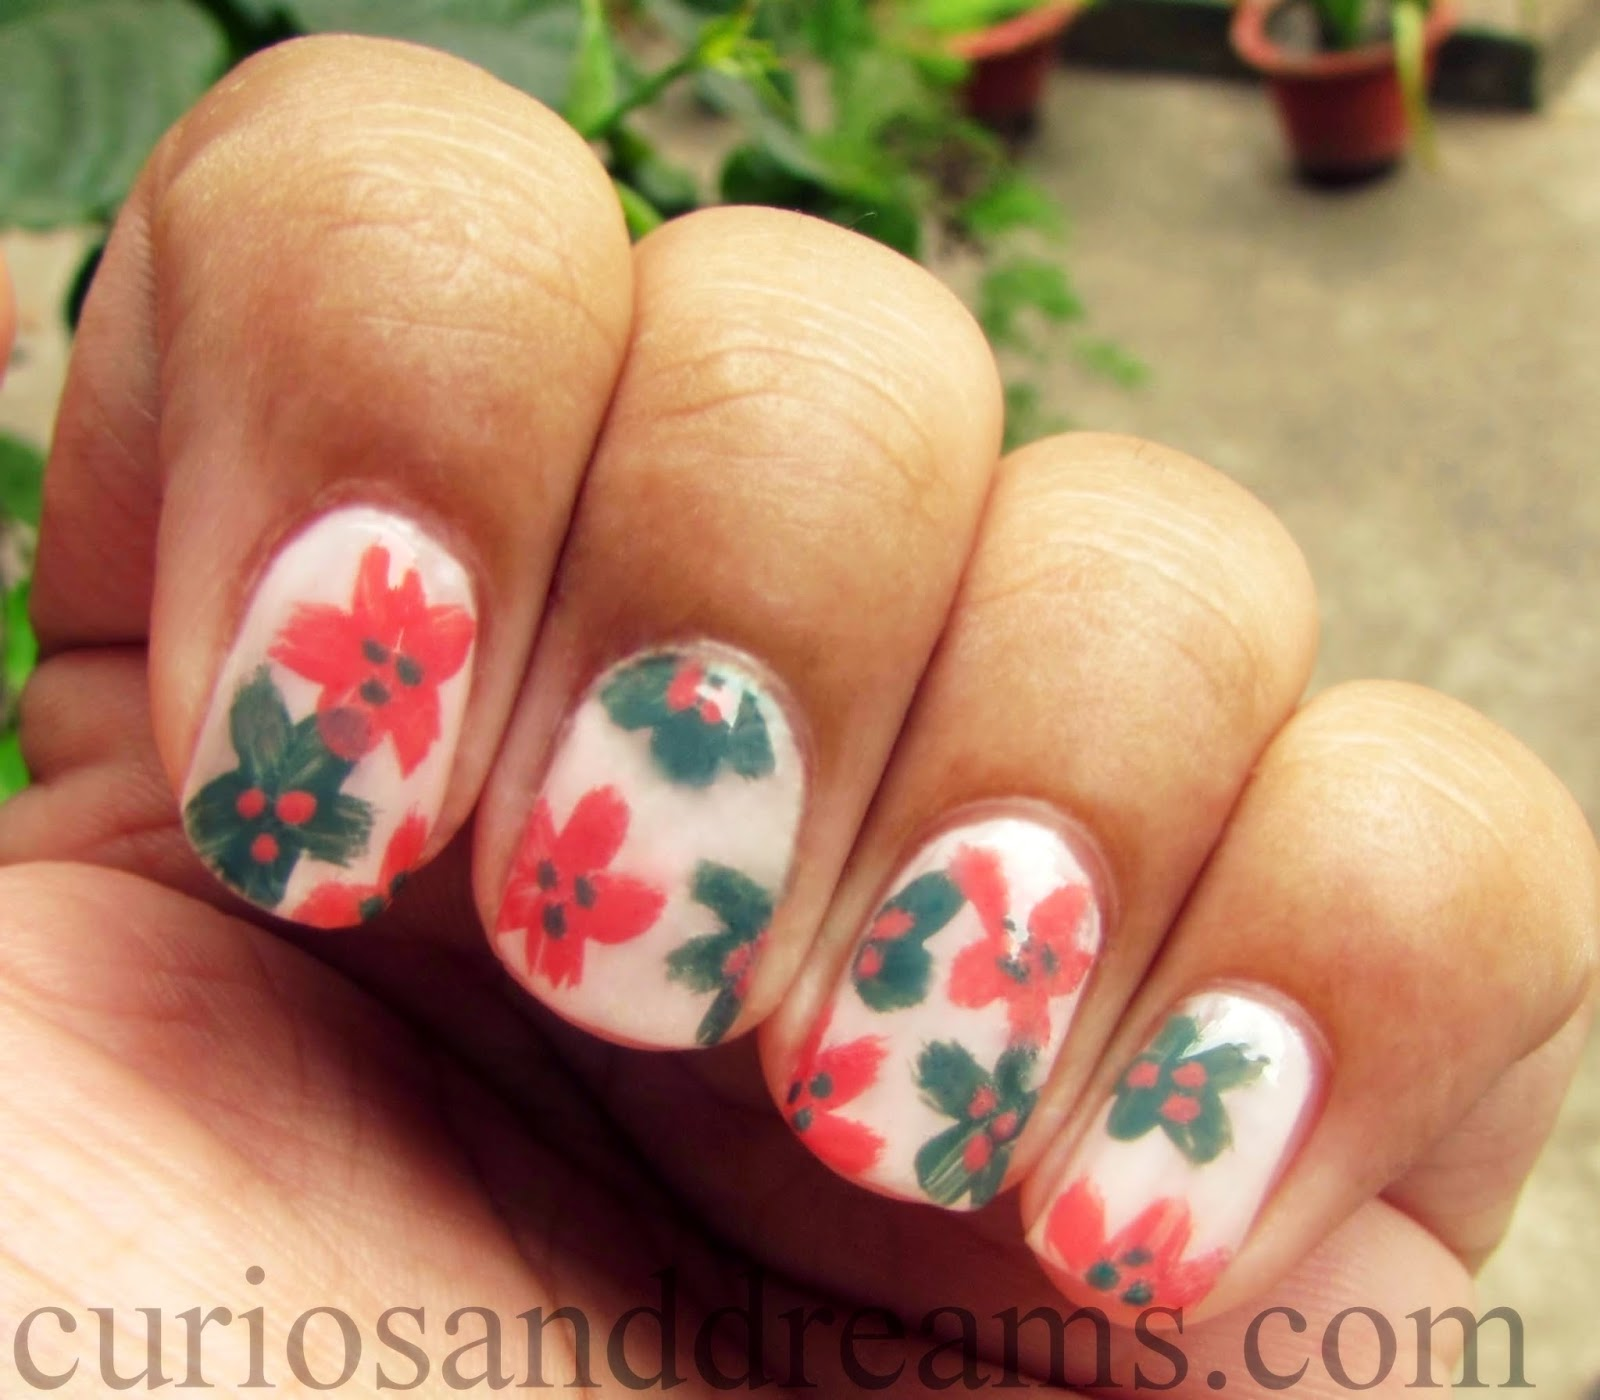 easy spring floral manicure, easy floral nail art tutorial, easy nail art designs